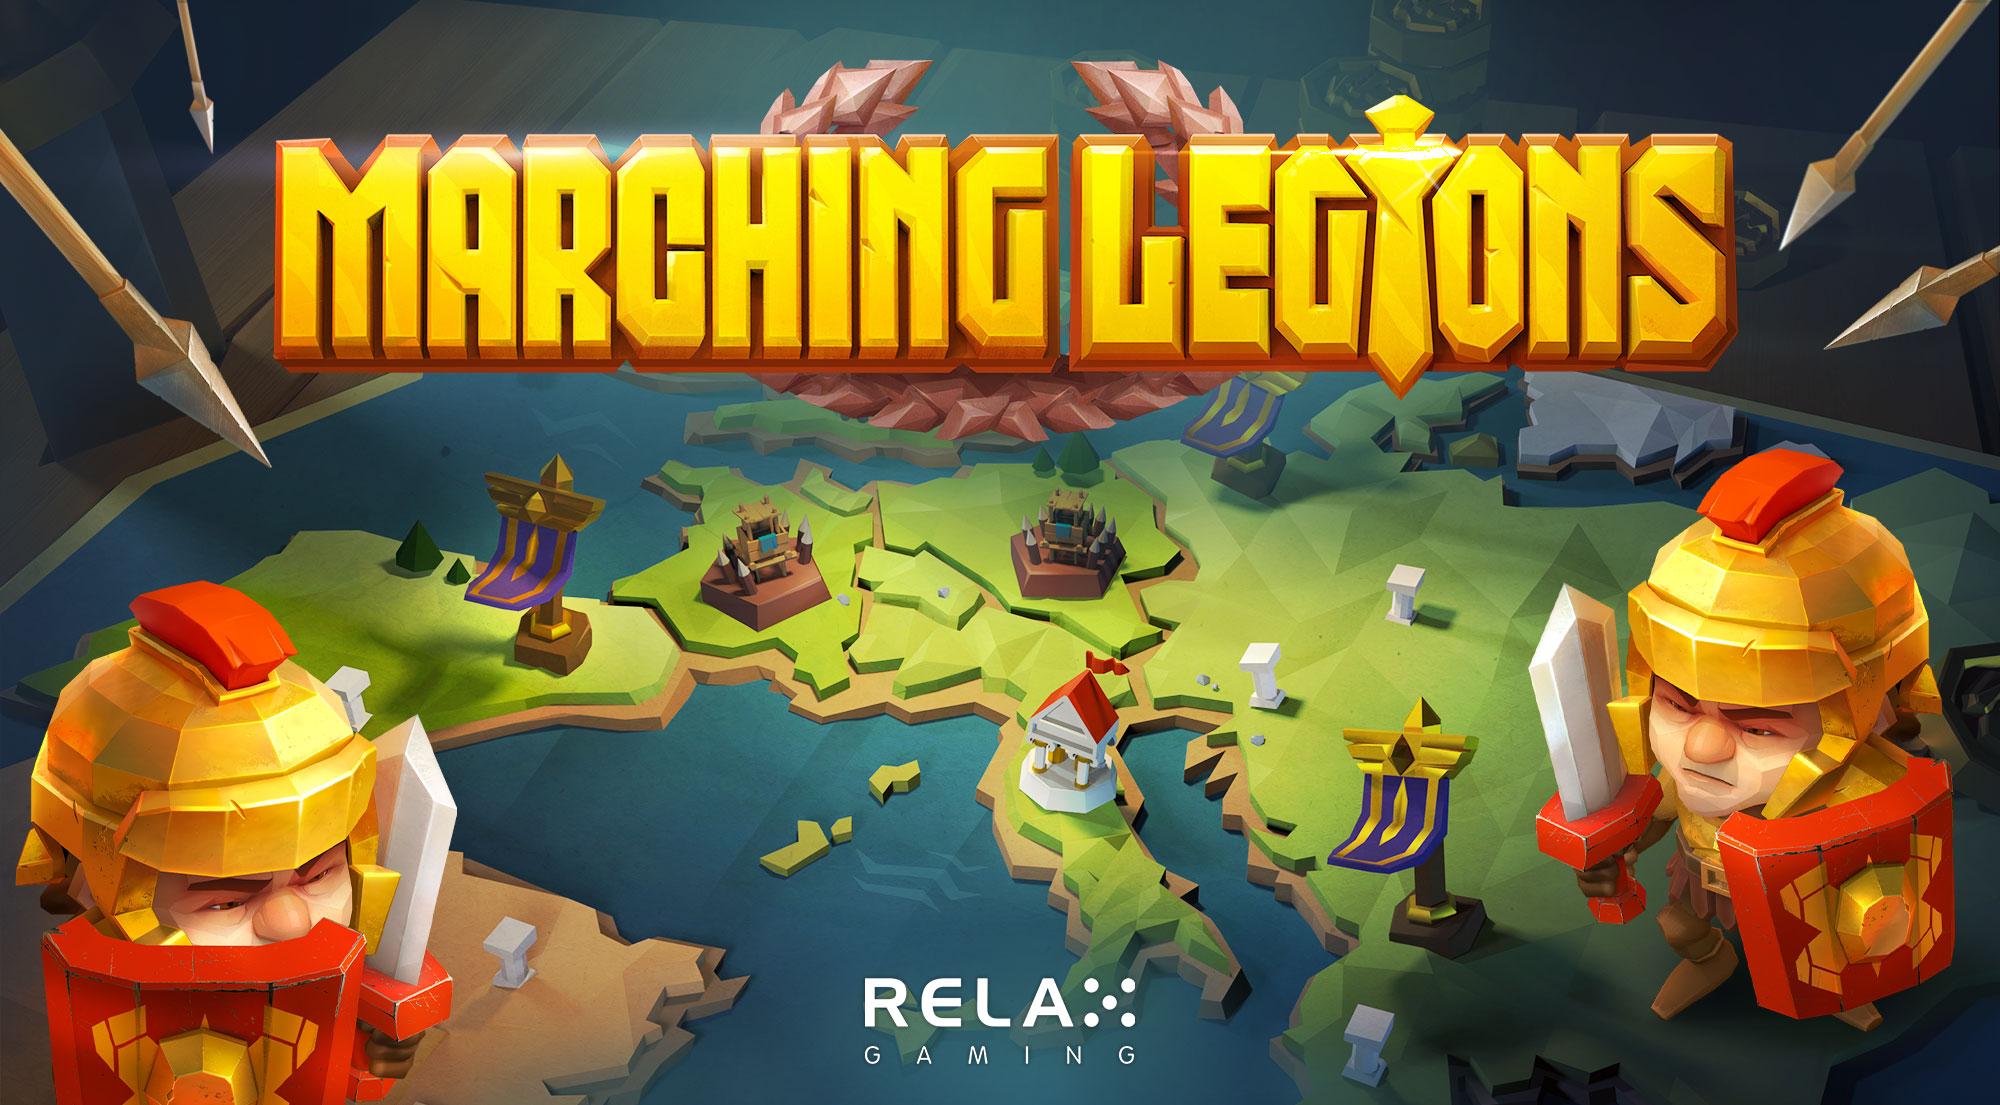 Relax Gaming rallies the troops in its new slot Marching Legions